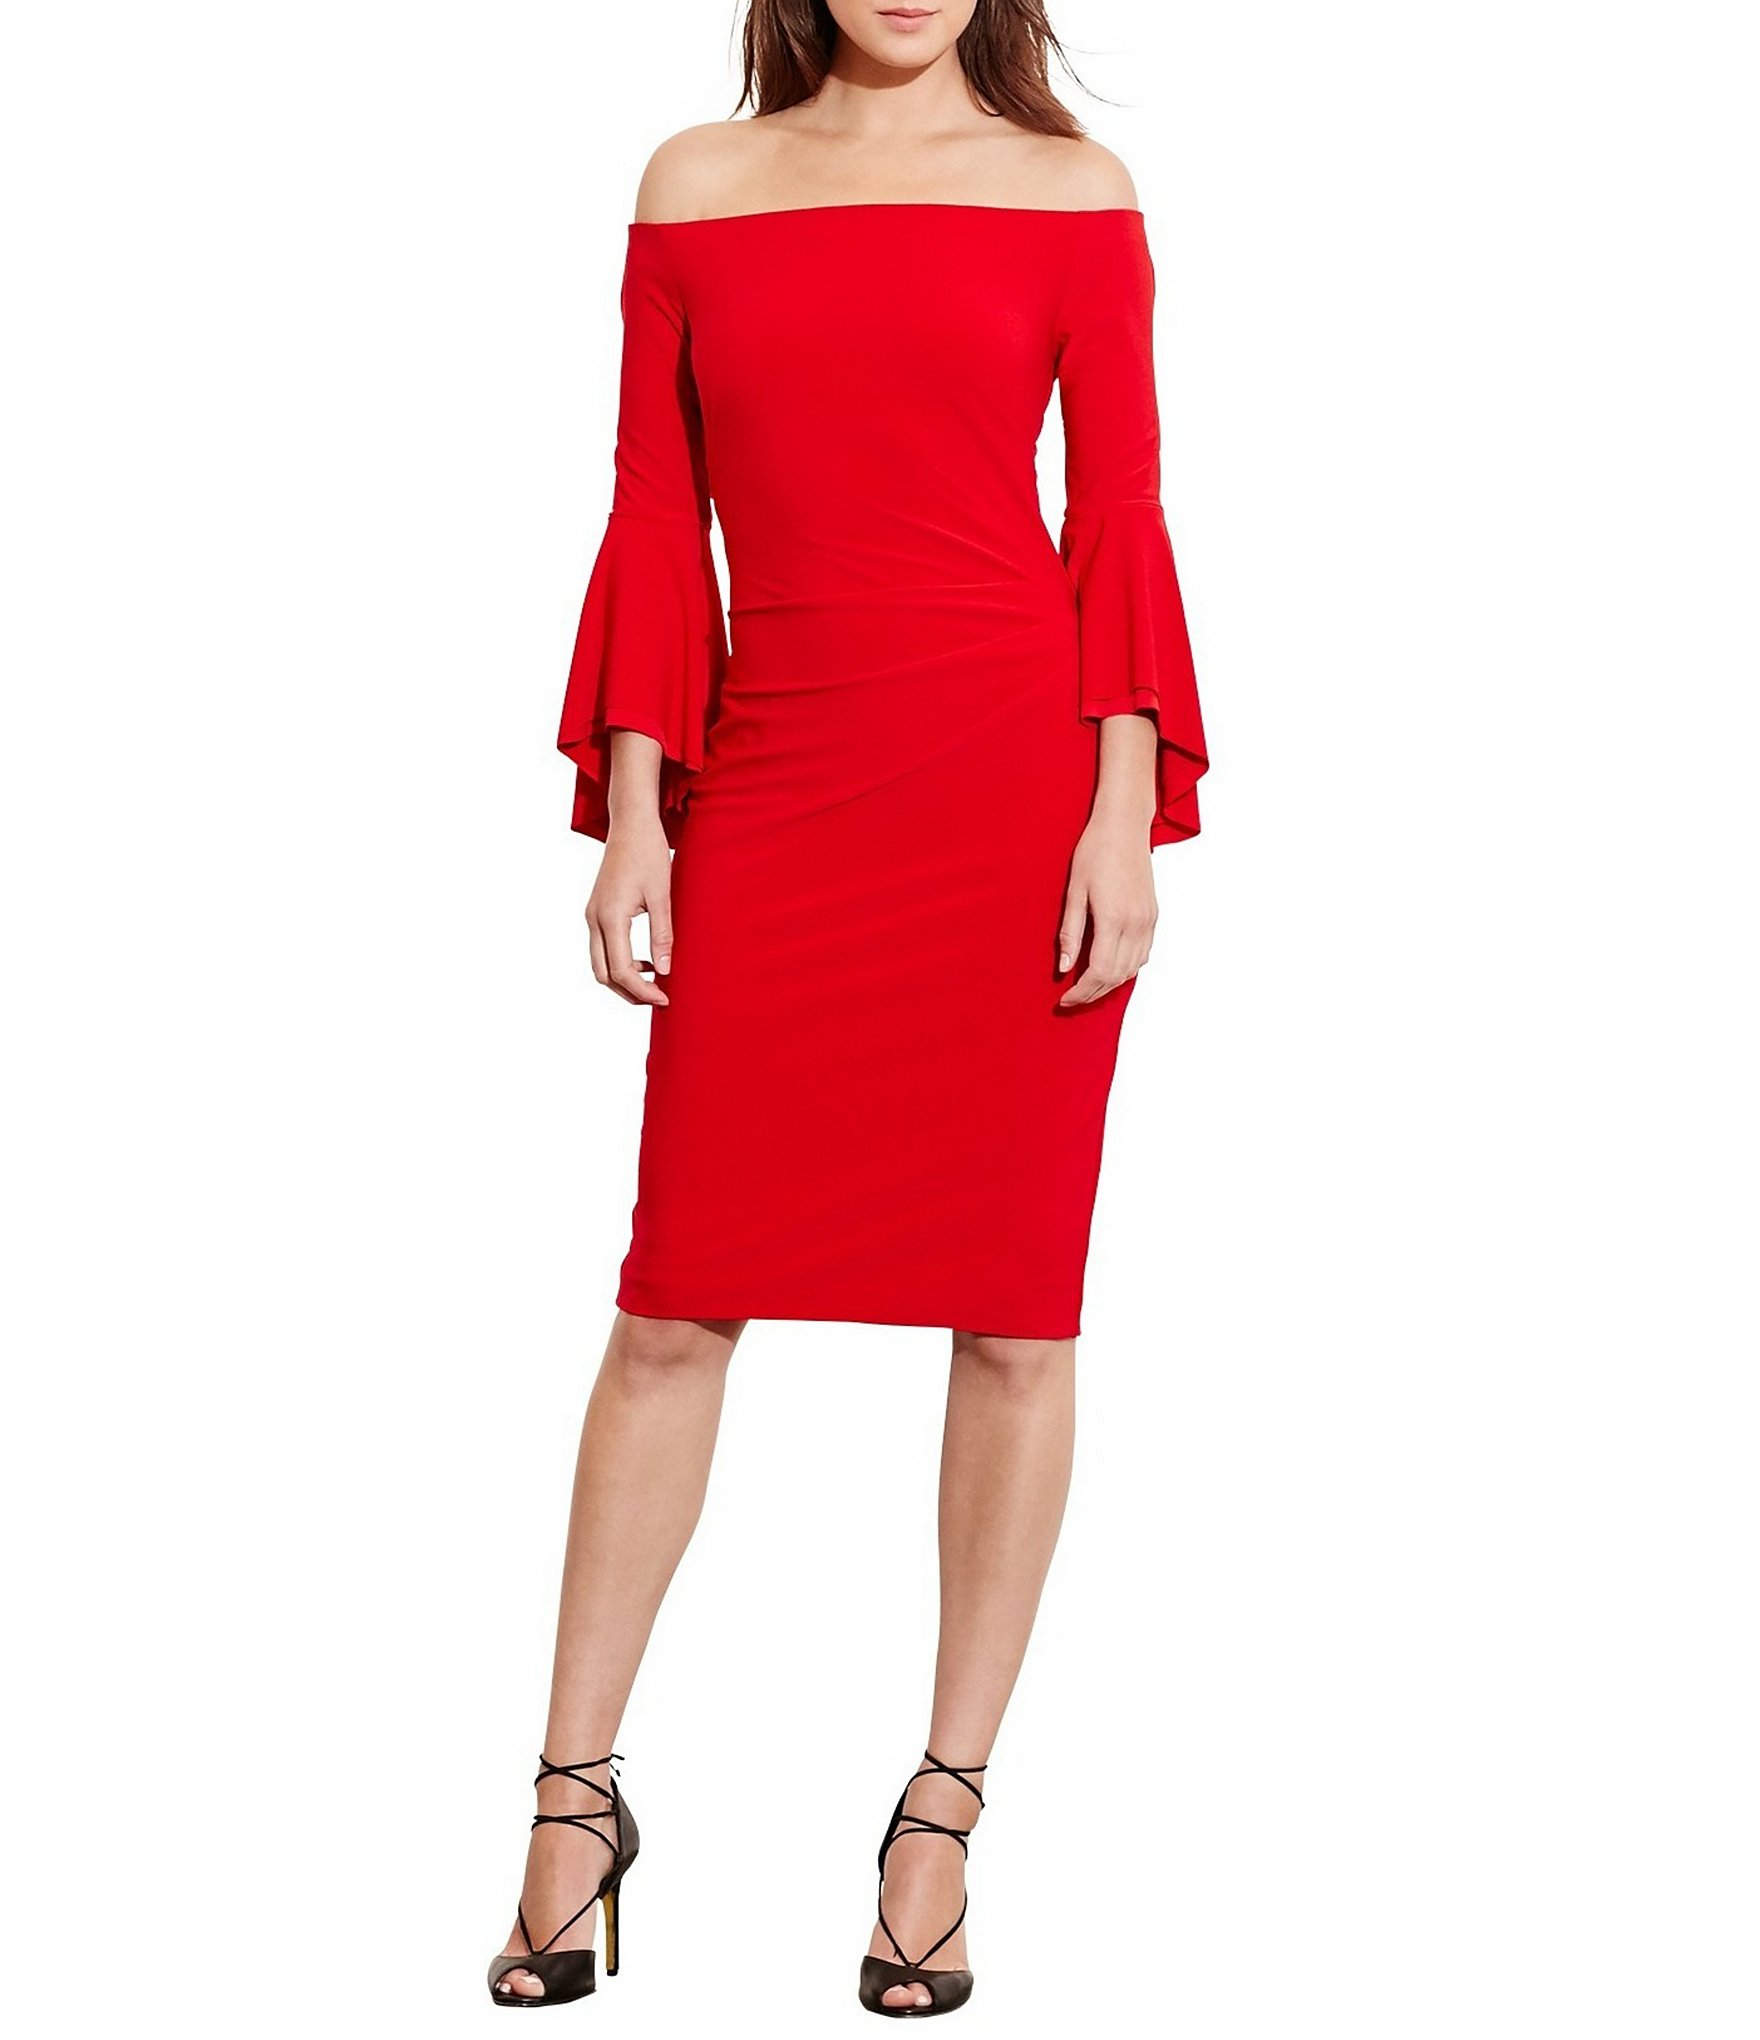 red cocktail dress red womenu0027s cocktail u0026 party dresses | dillards USHVZHZ